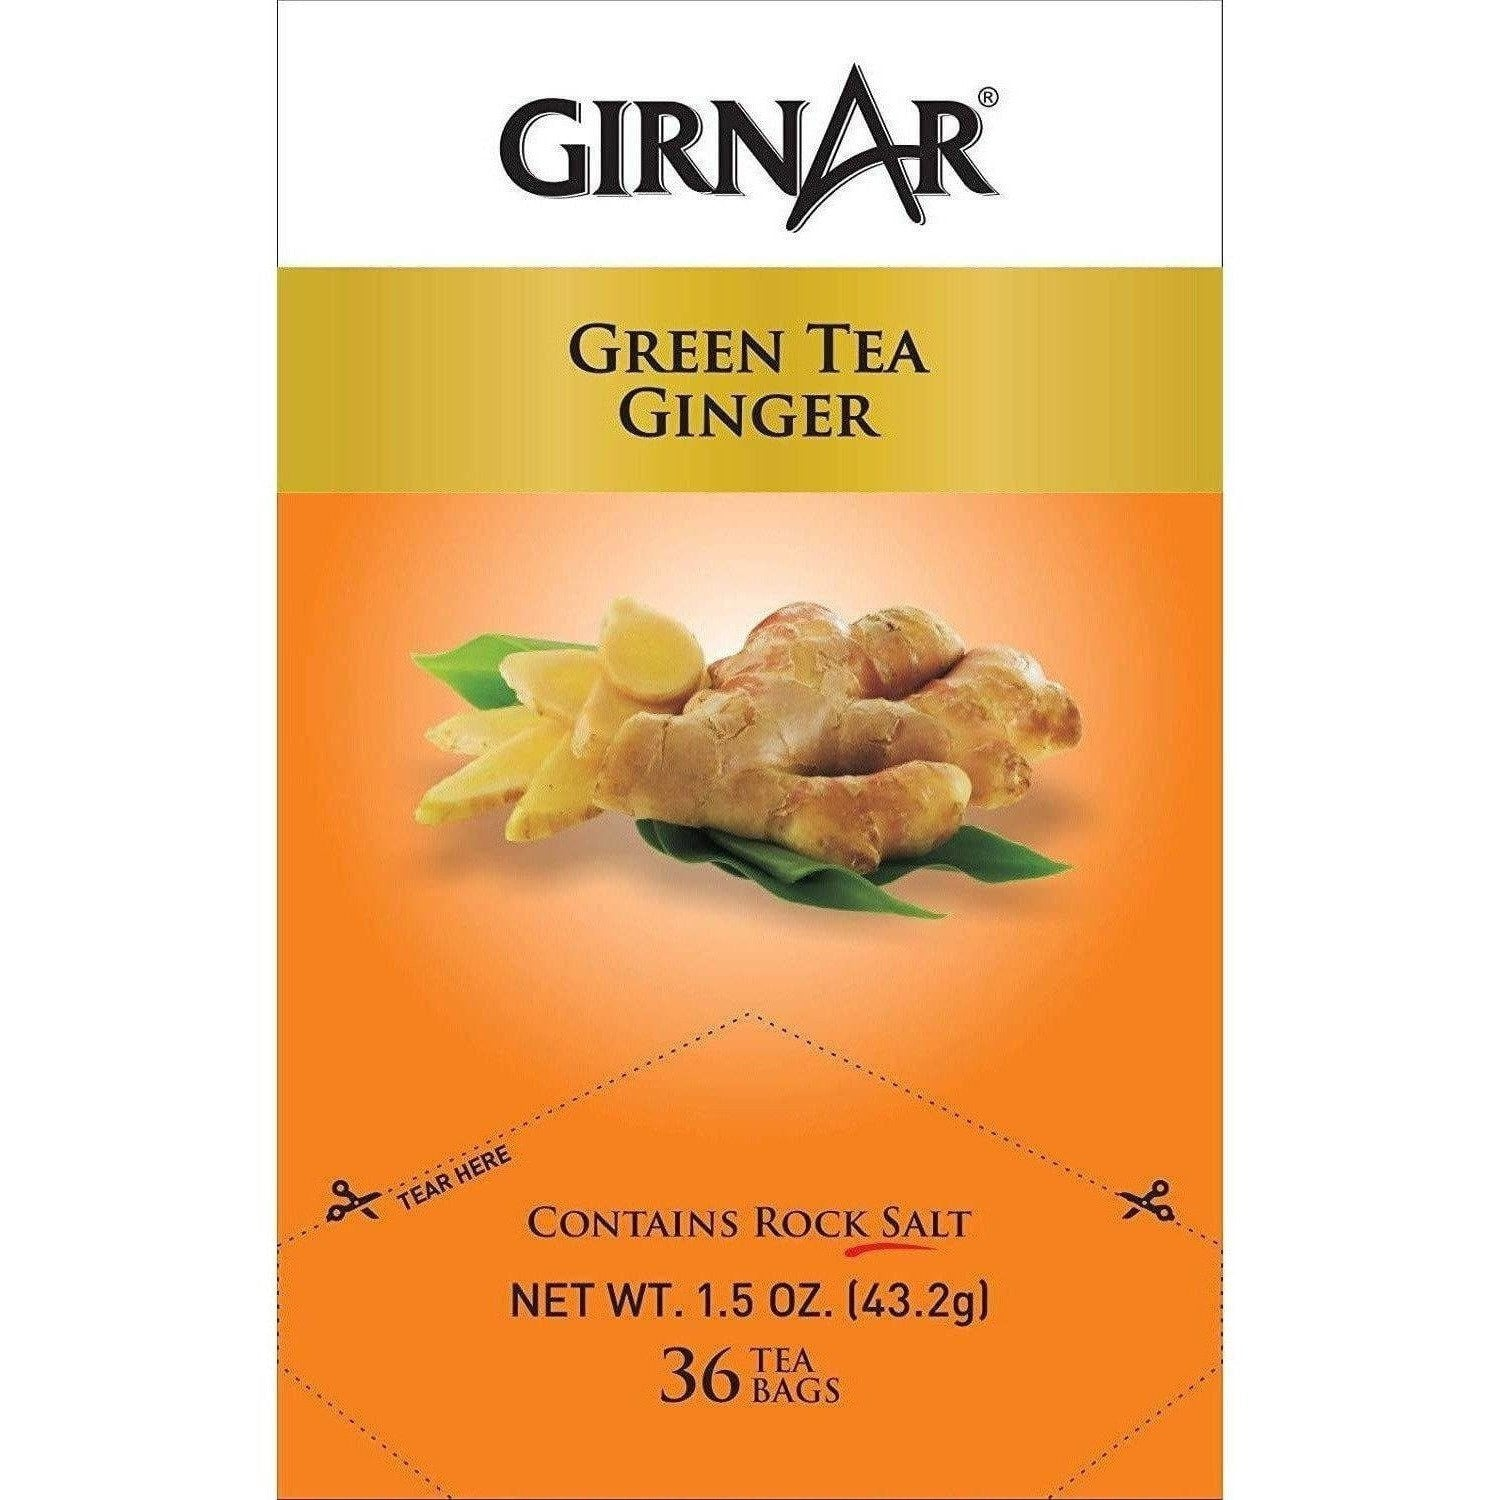 Girnar Green Tea Ginger